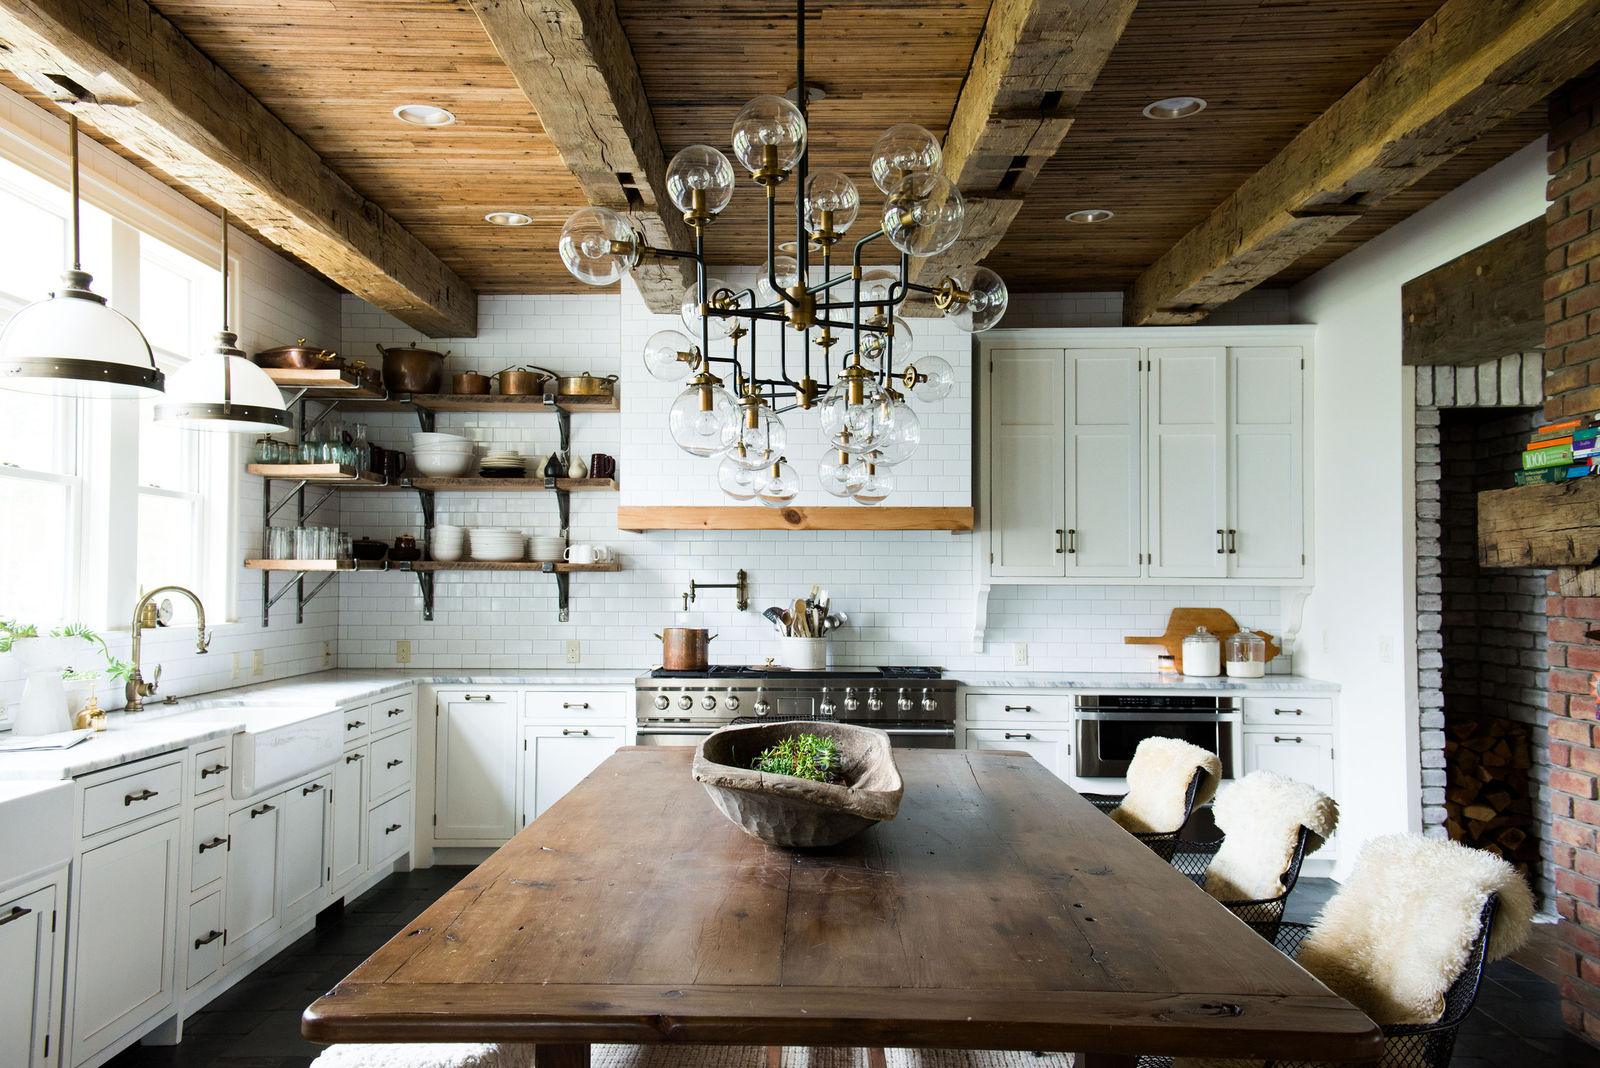 Leanne Ford kitchen with modern farmhouse style, Sputnik chandelier, white cabinets, subway tile, and rustic decor.